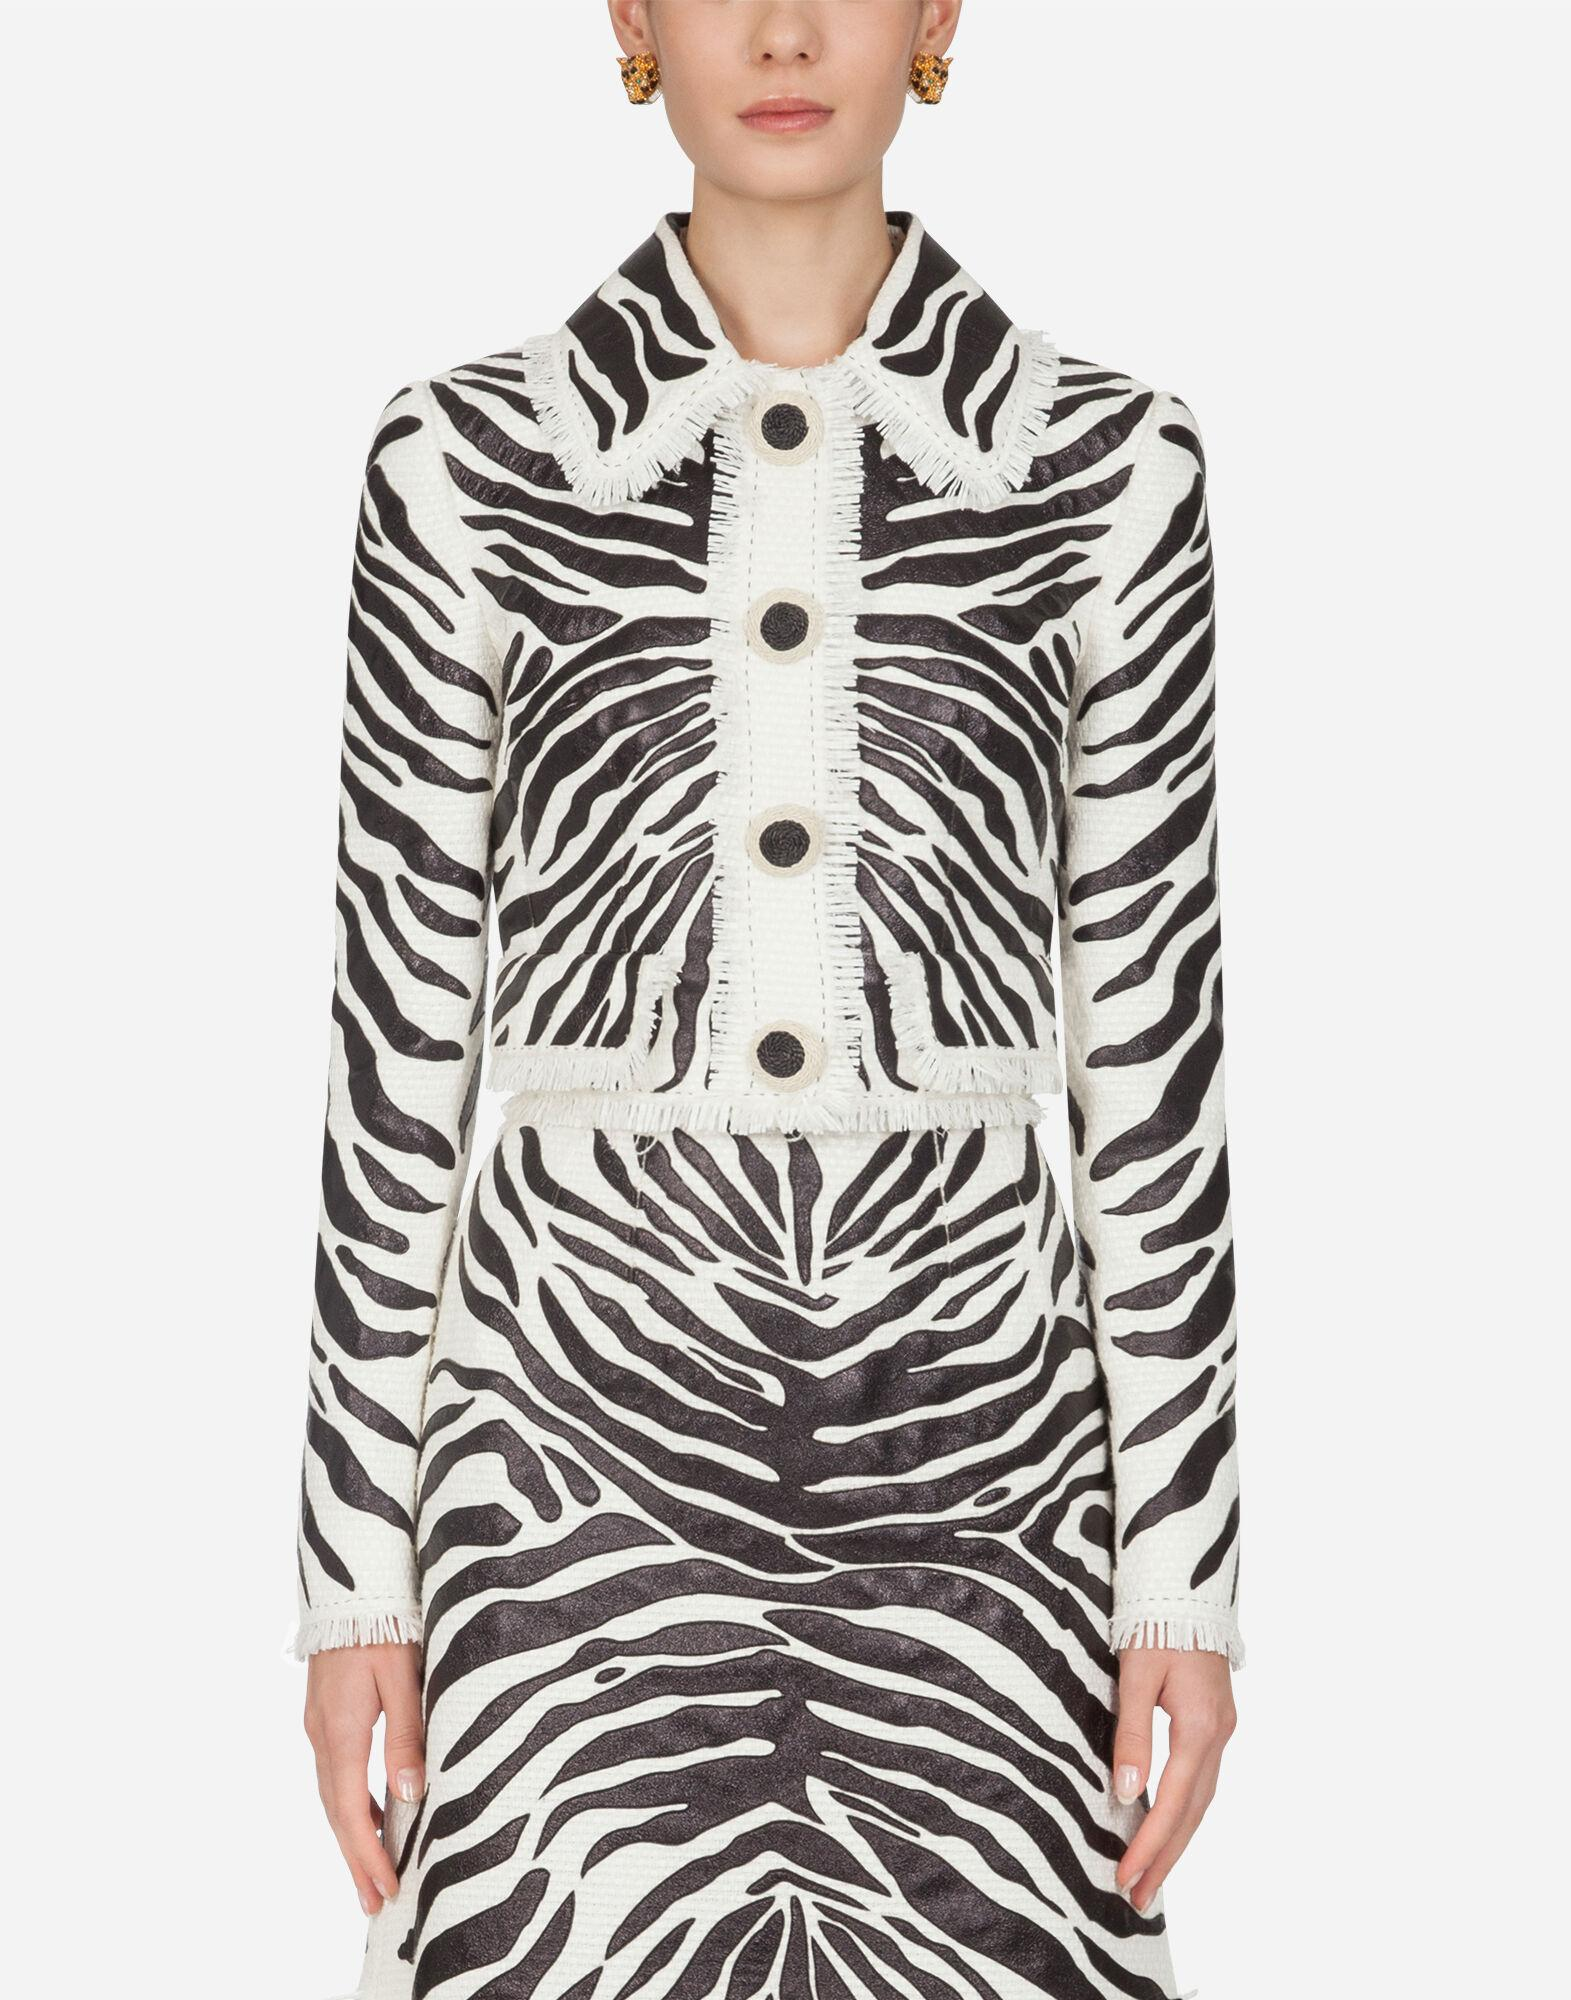 Short single-breasted leather jacket with zebra print embroidery